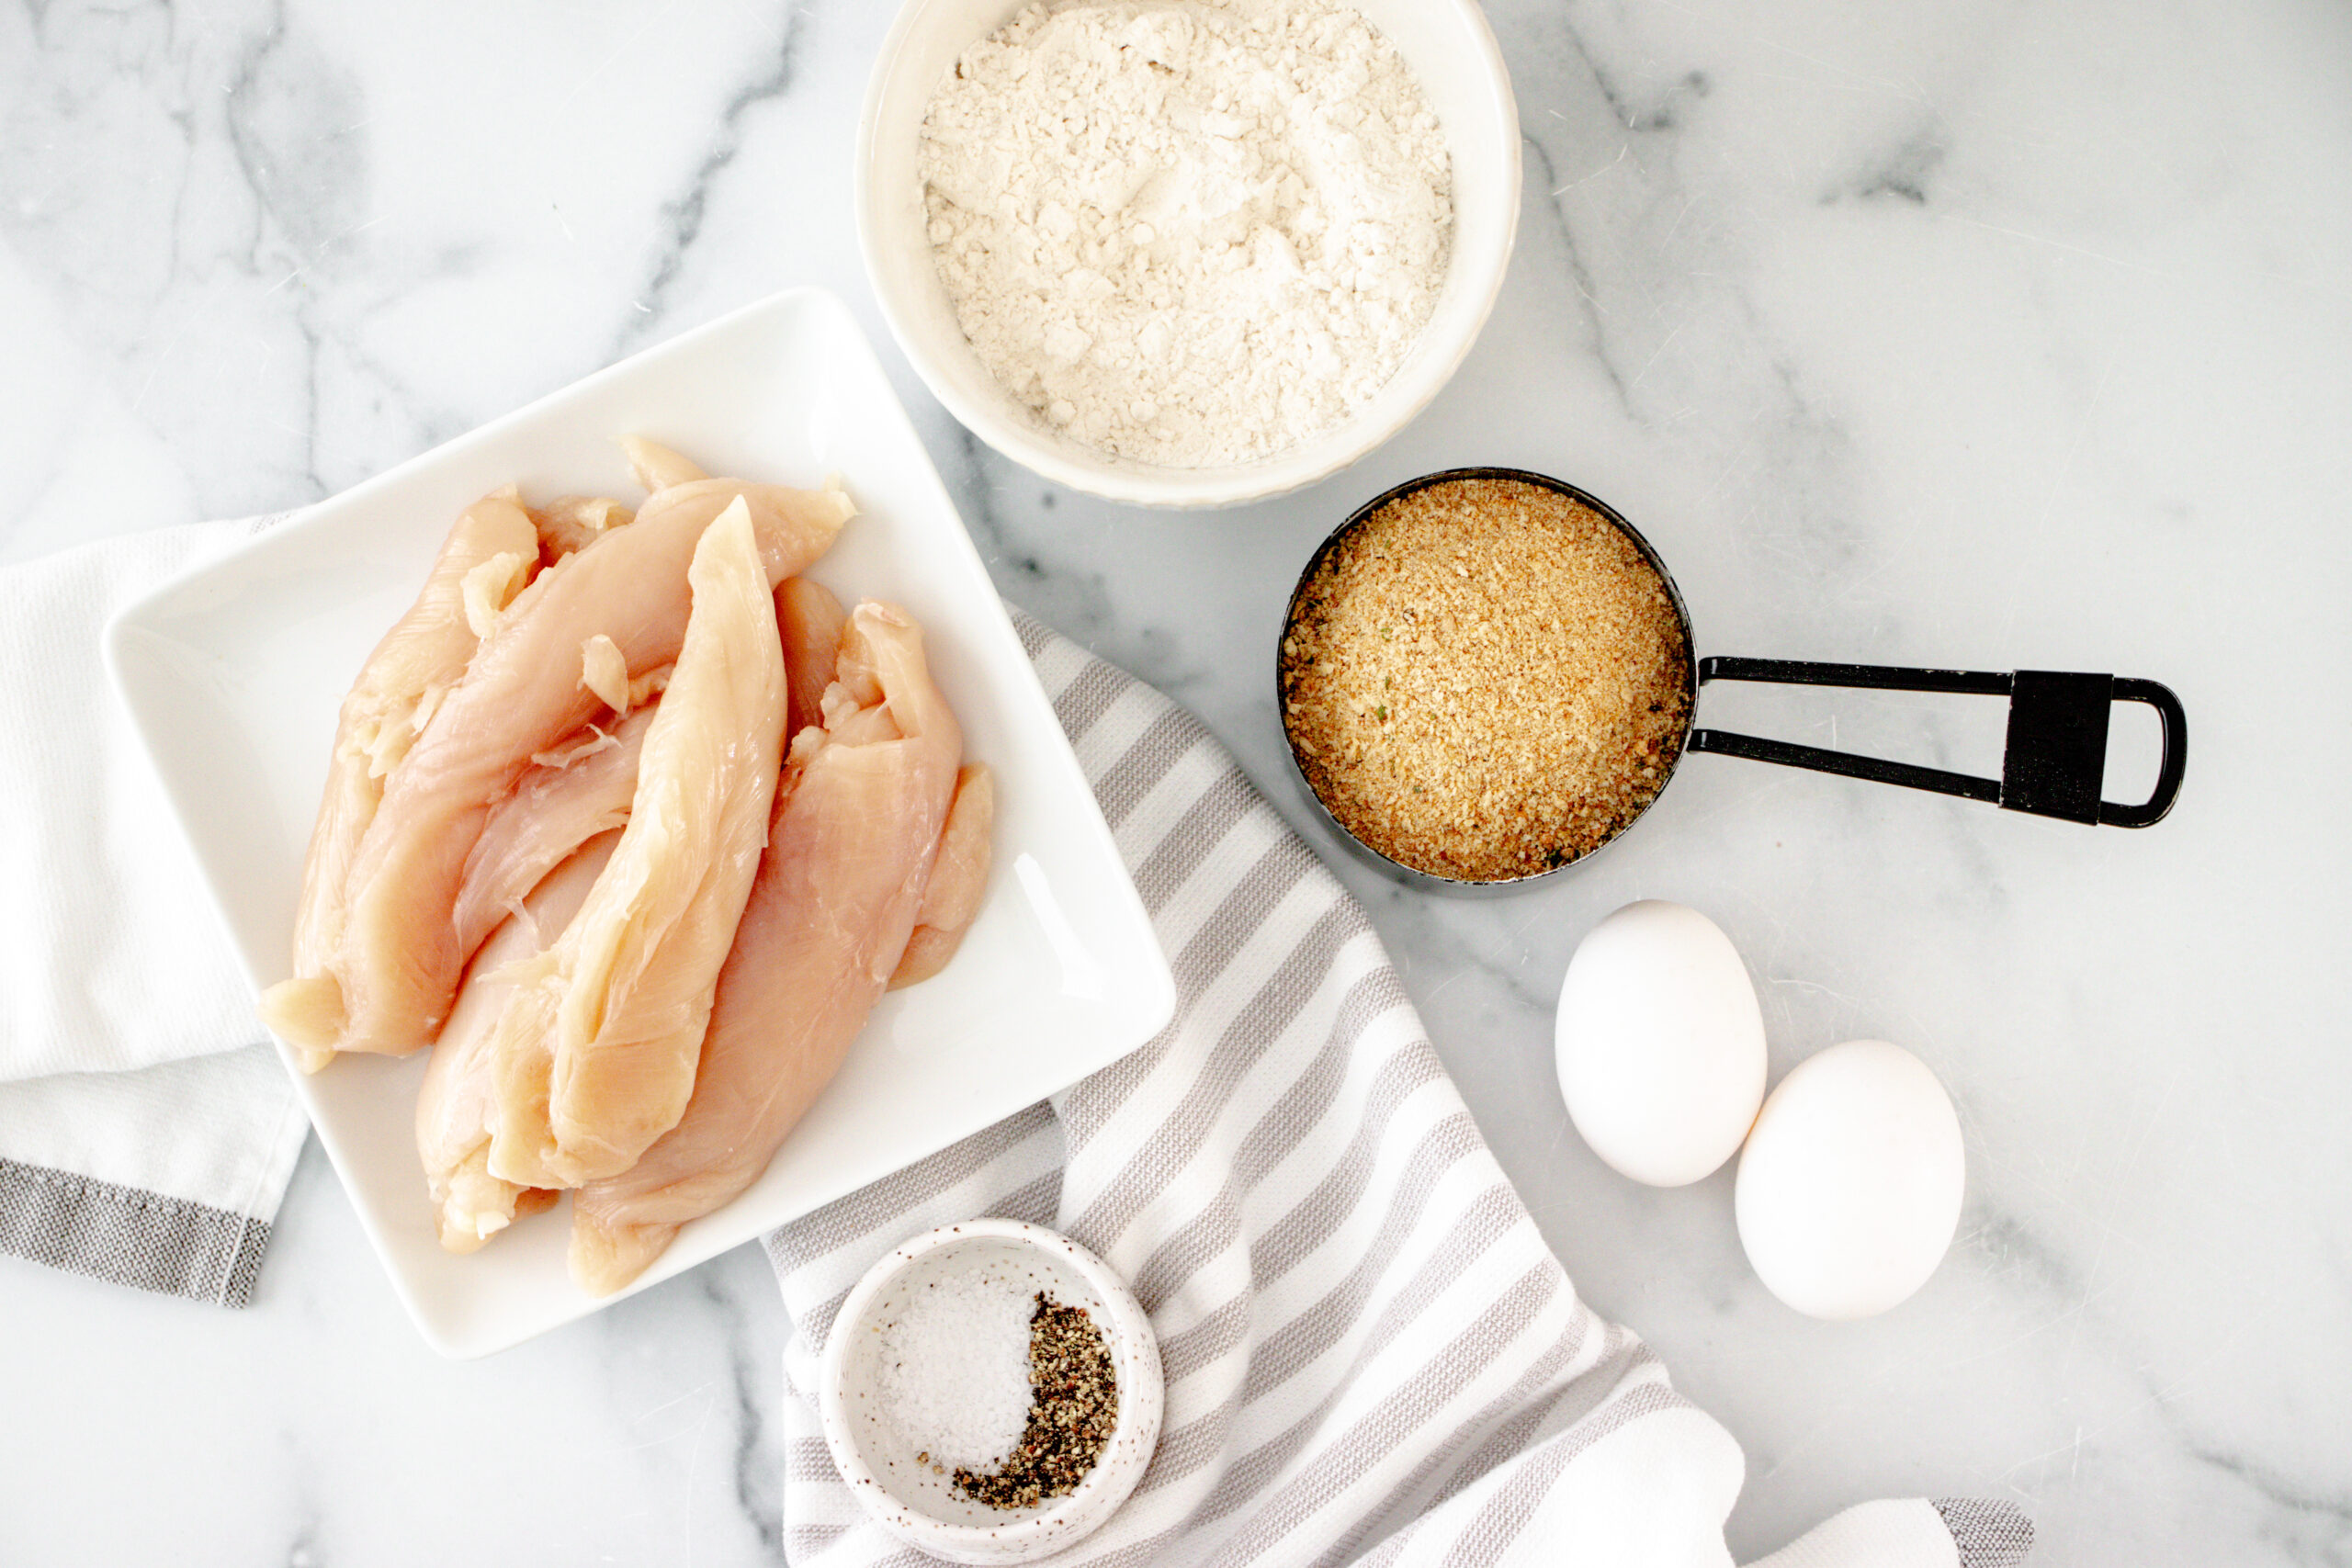 A white plate with raw chicken and a white bowl of flour, eggs, panko and seasonings.